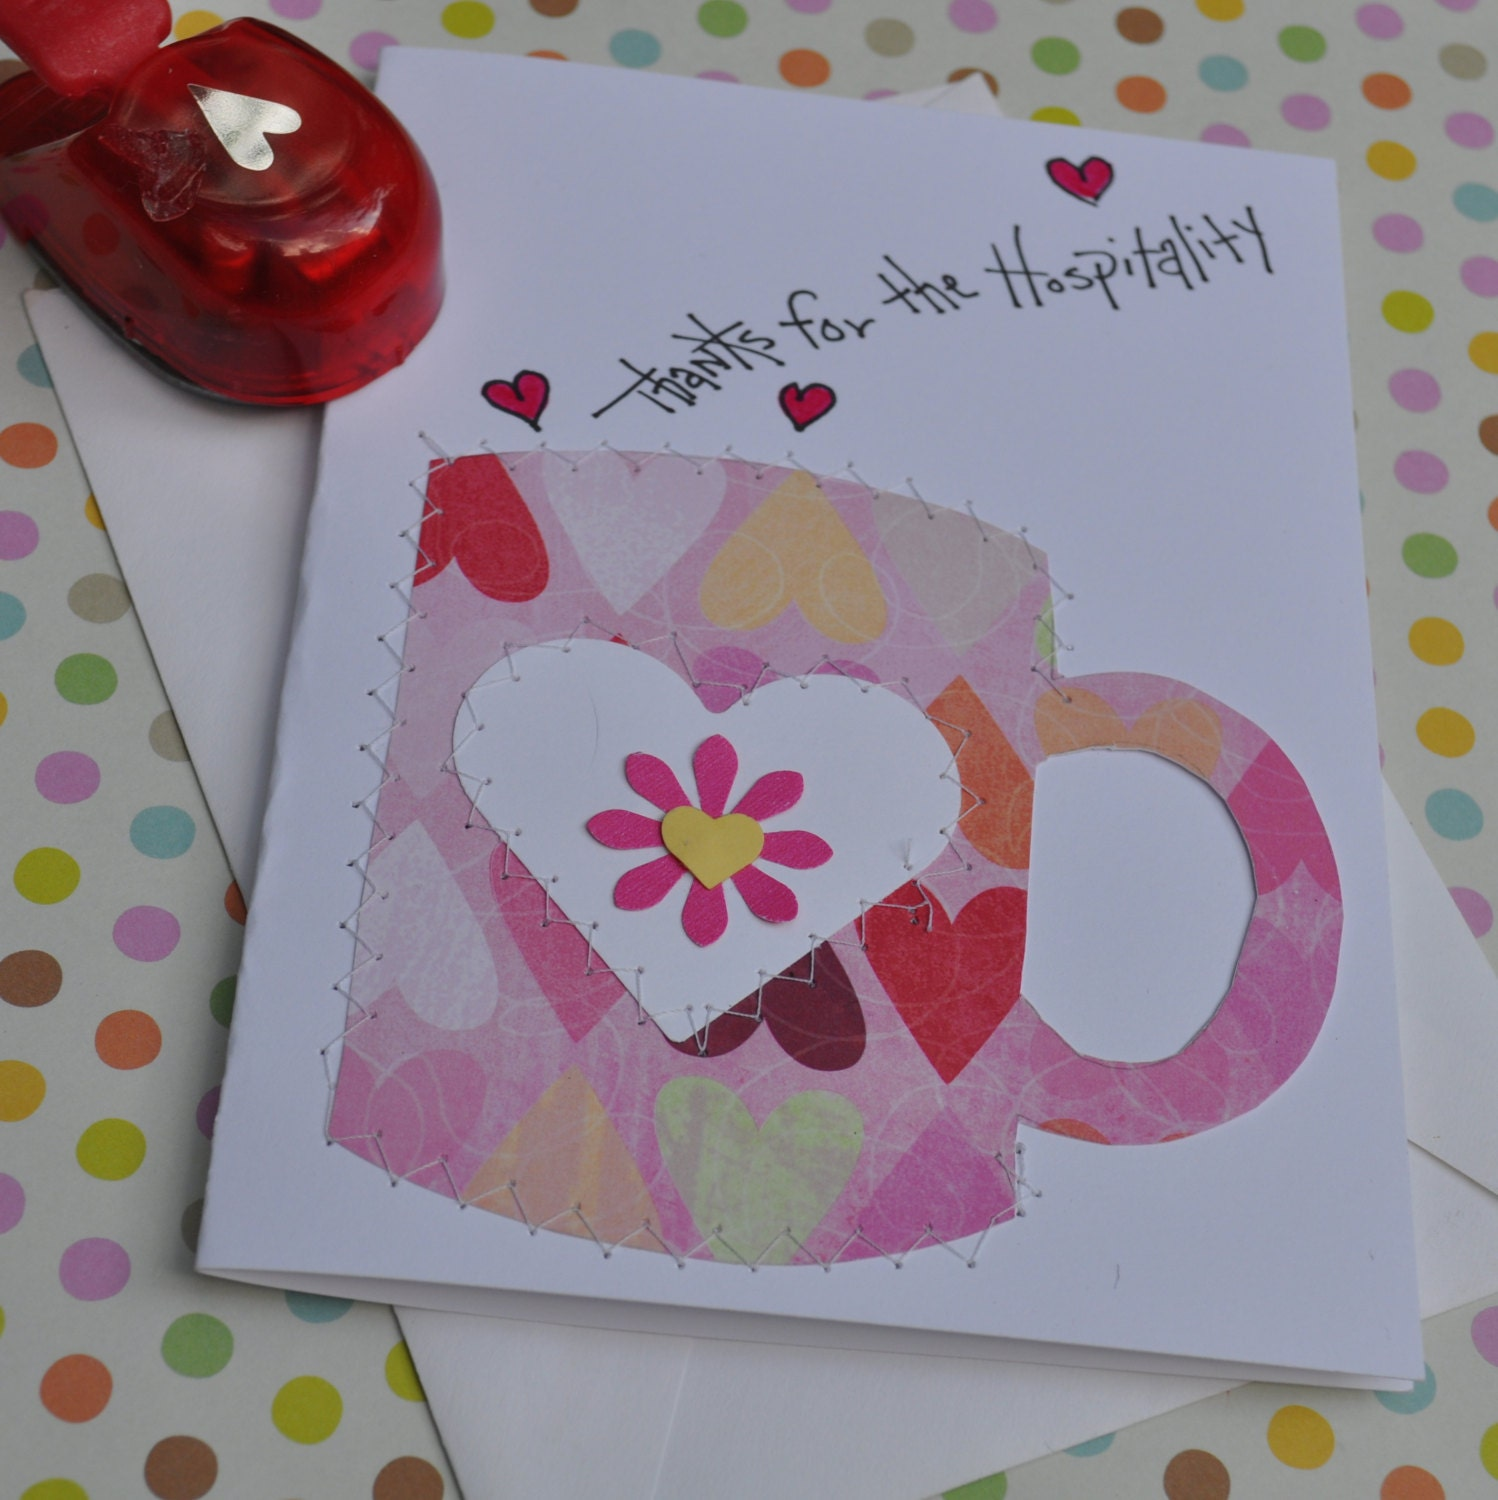 Thank You Greeting Card Thanks For Your Hospitality